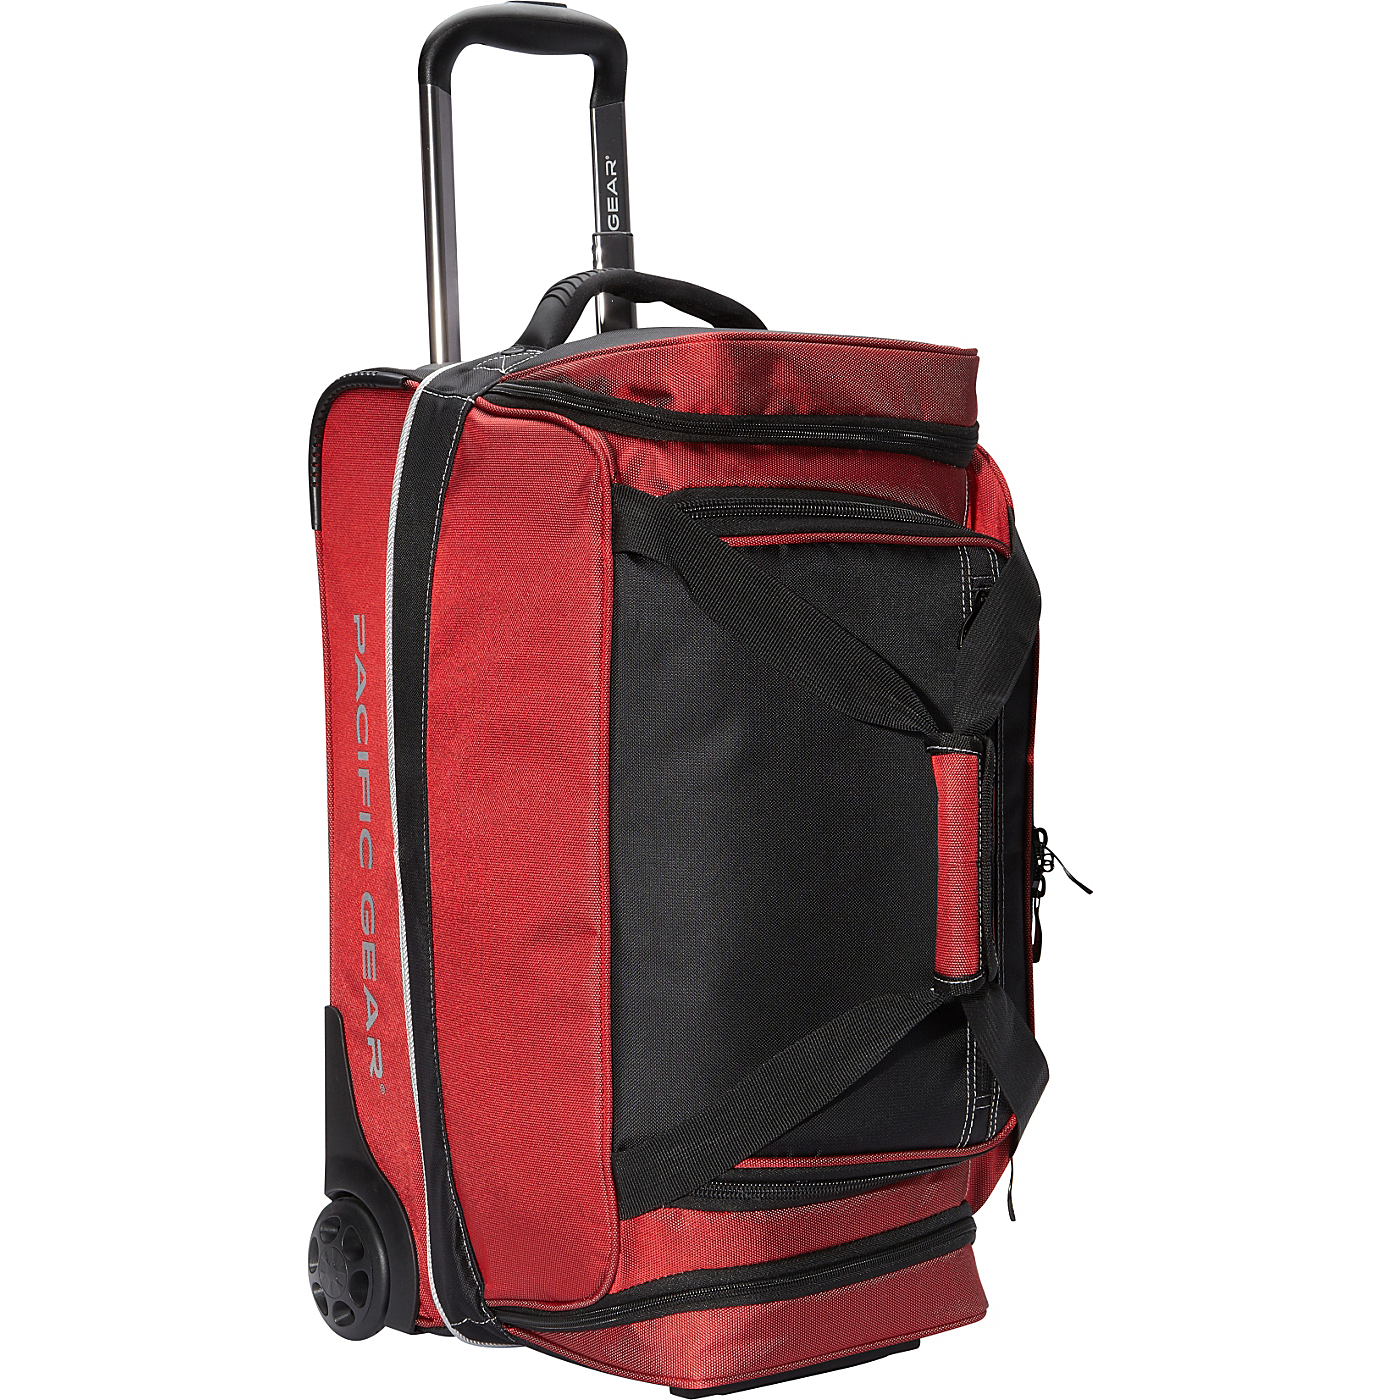 37da3bb2d5 Pacific Gear Drop Zone Carry On Rolling Duffel Bag Red Trave